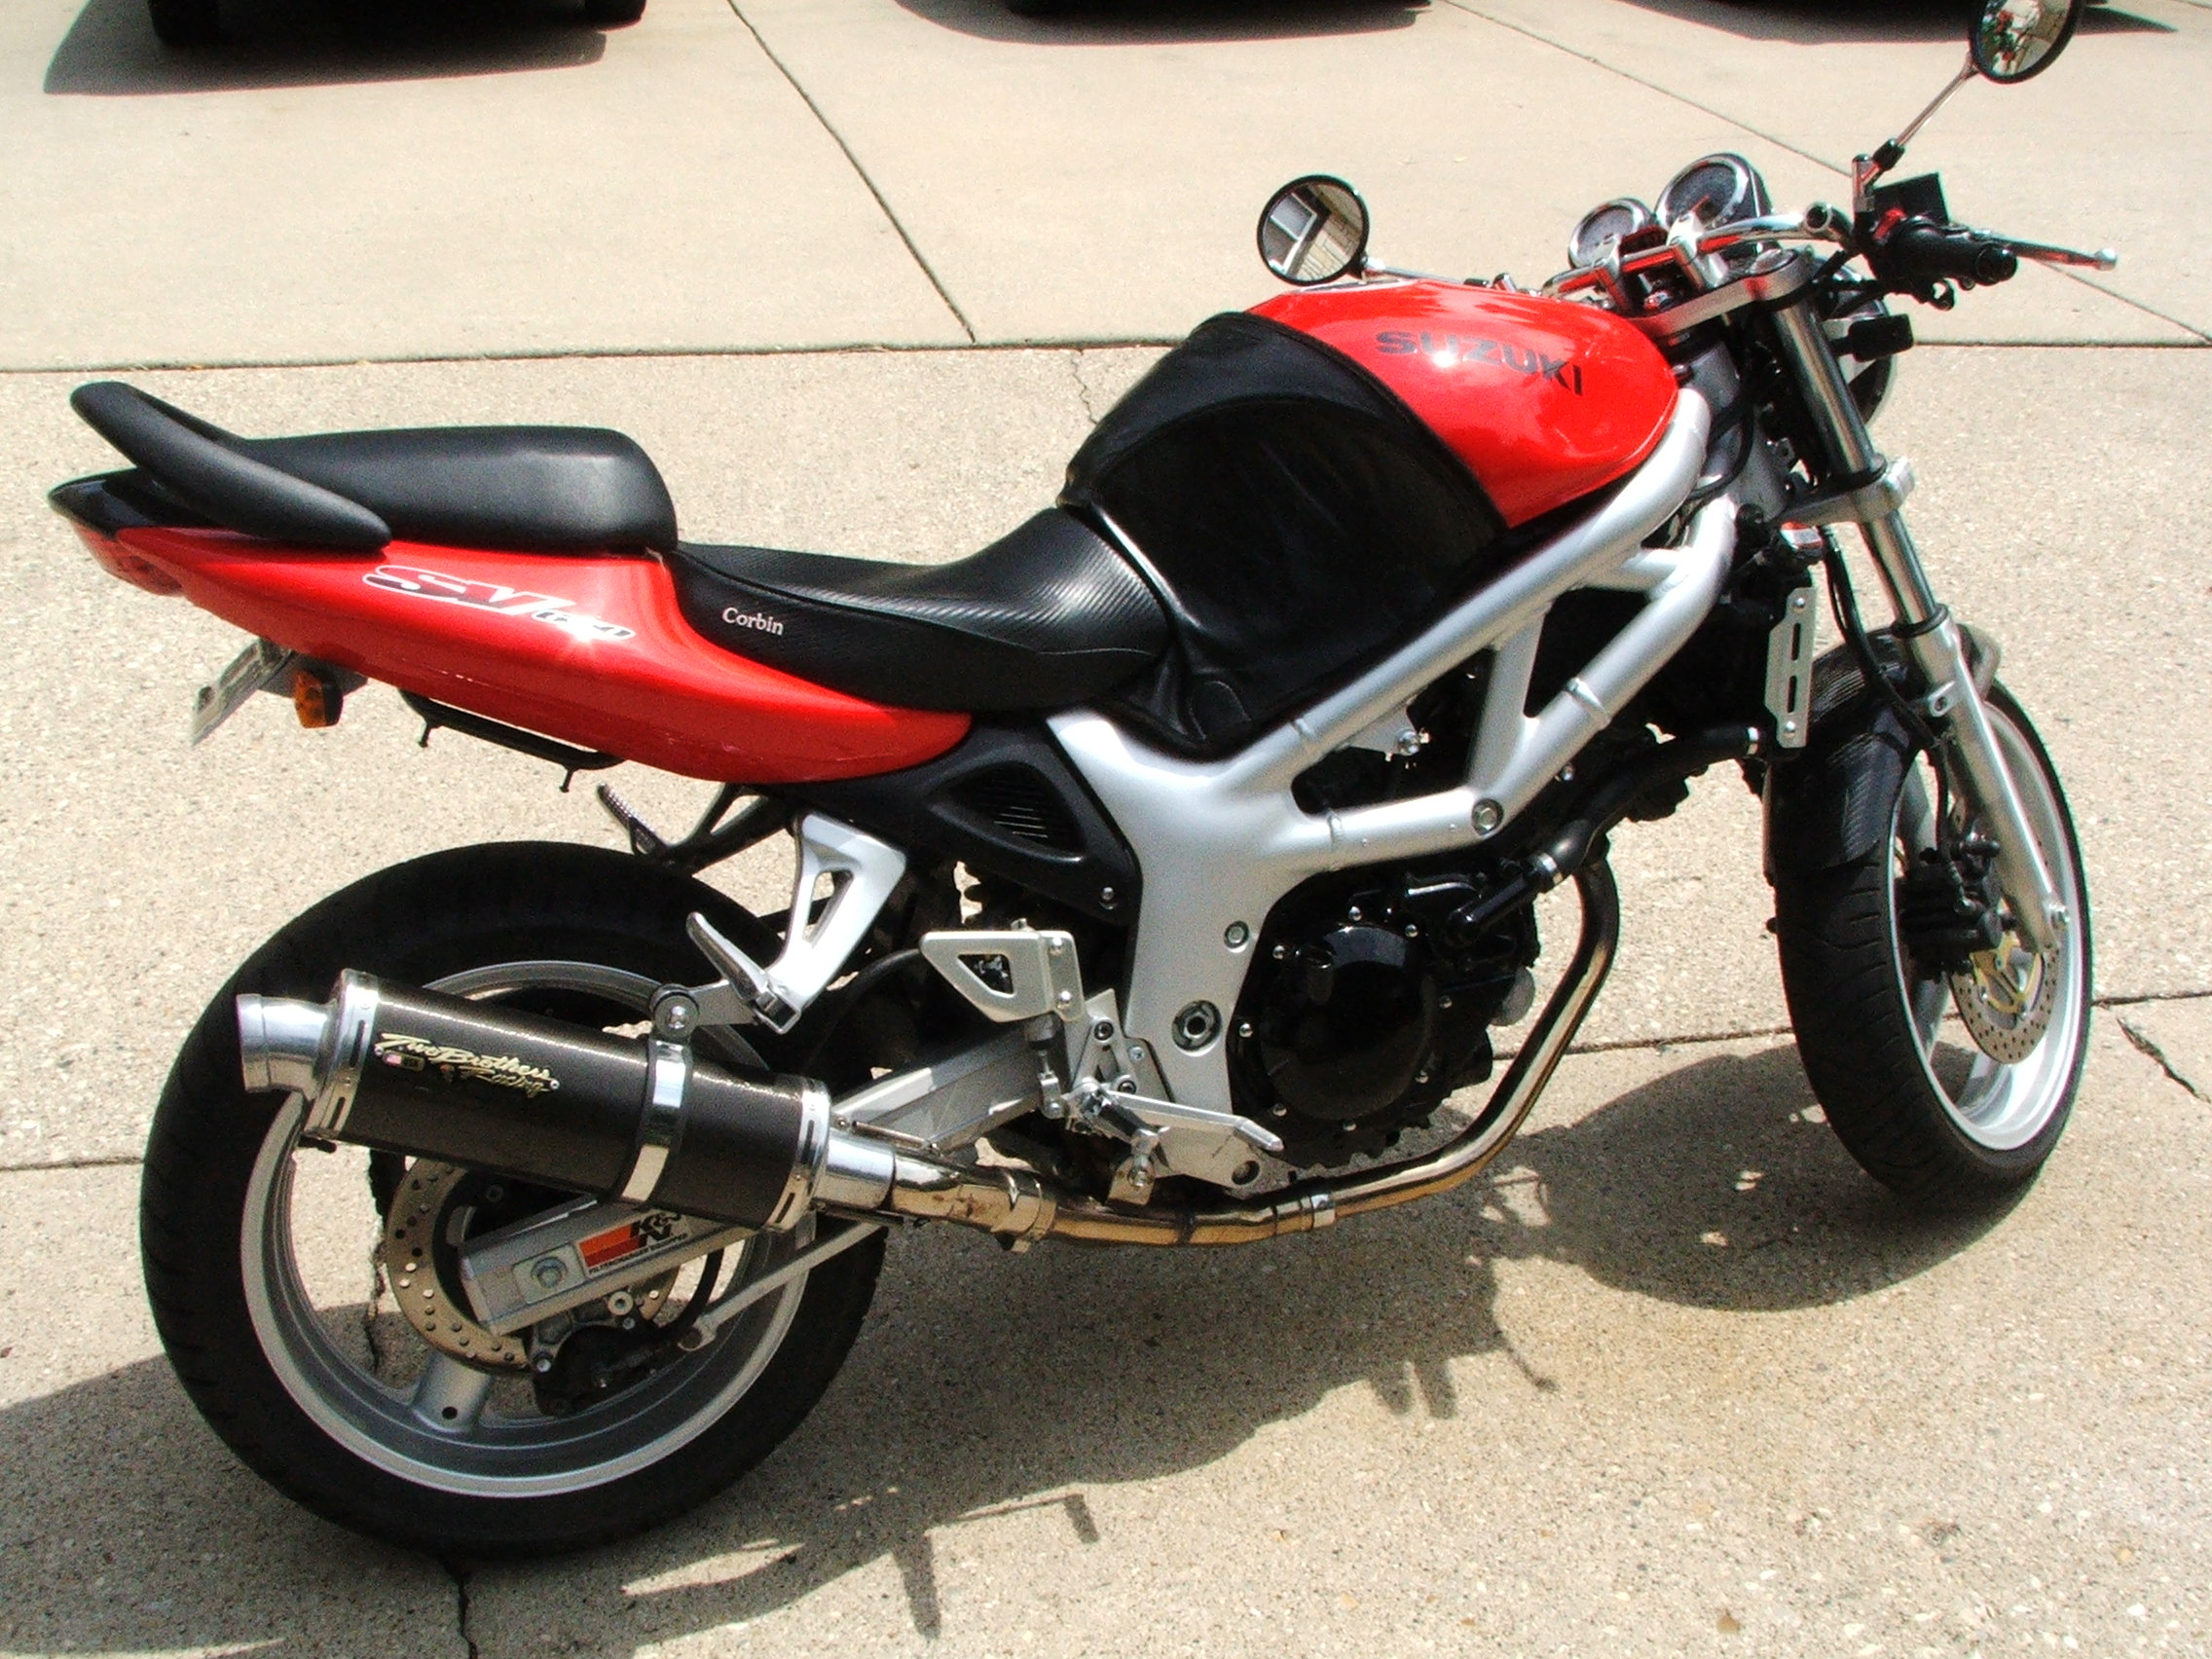 What Is Included In A Tune Up >> Suzuki 1999 Sv 650 - Sportbikes.net